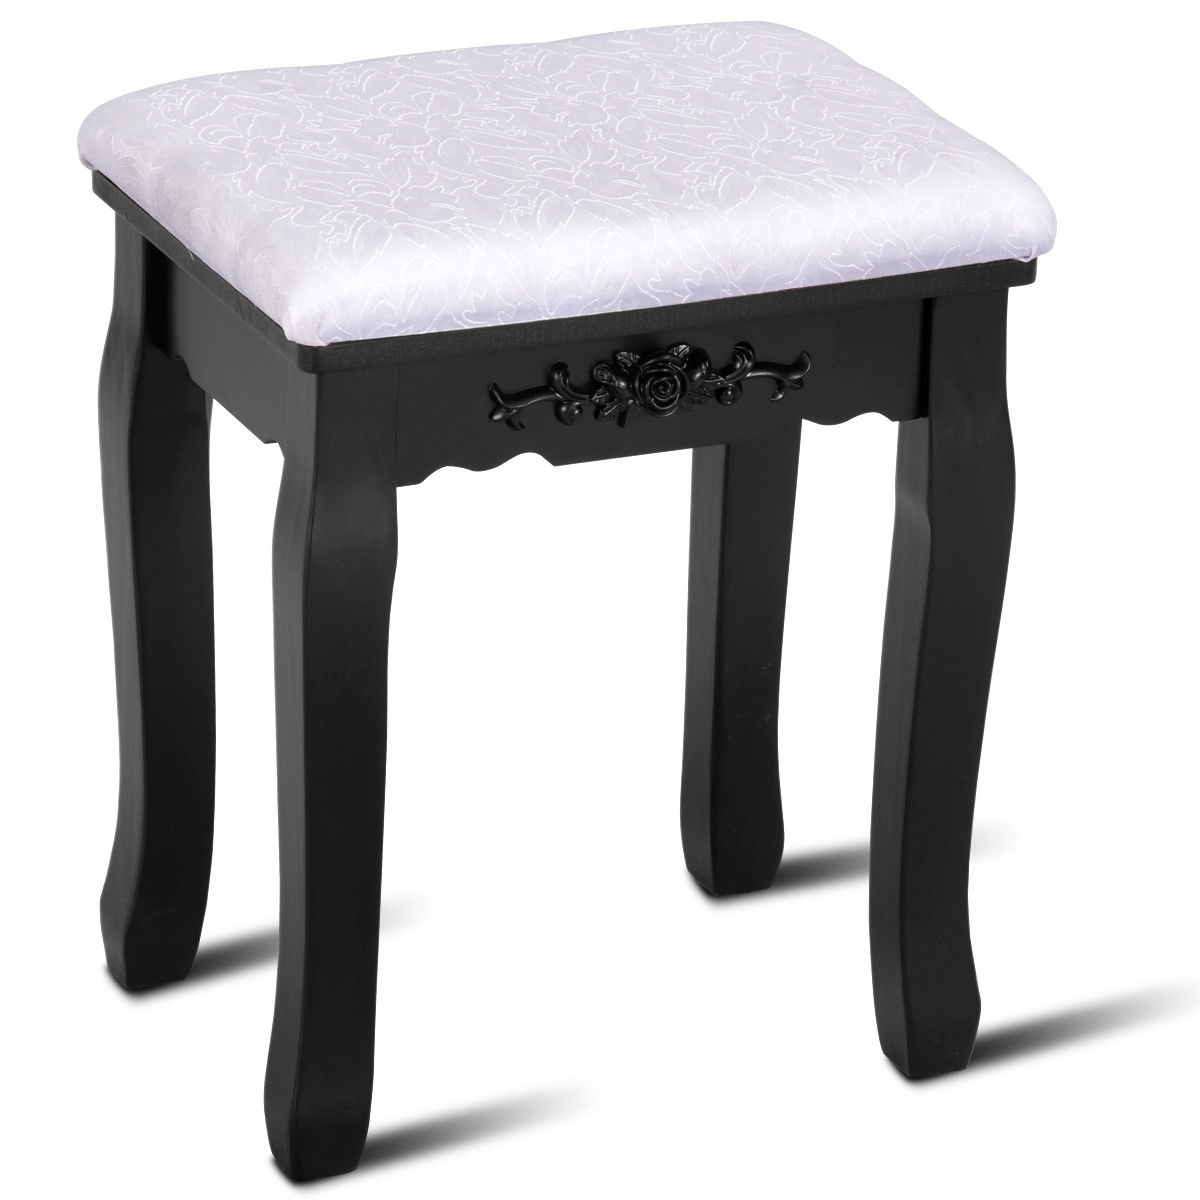 White Compact Vanity Makeup Dressing Table Stool Set